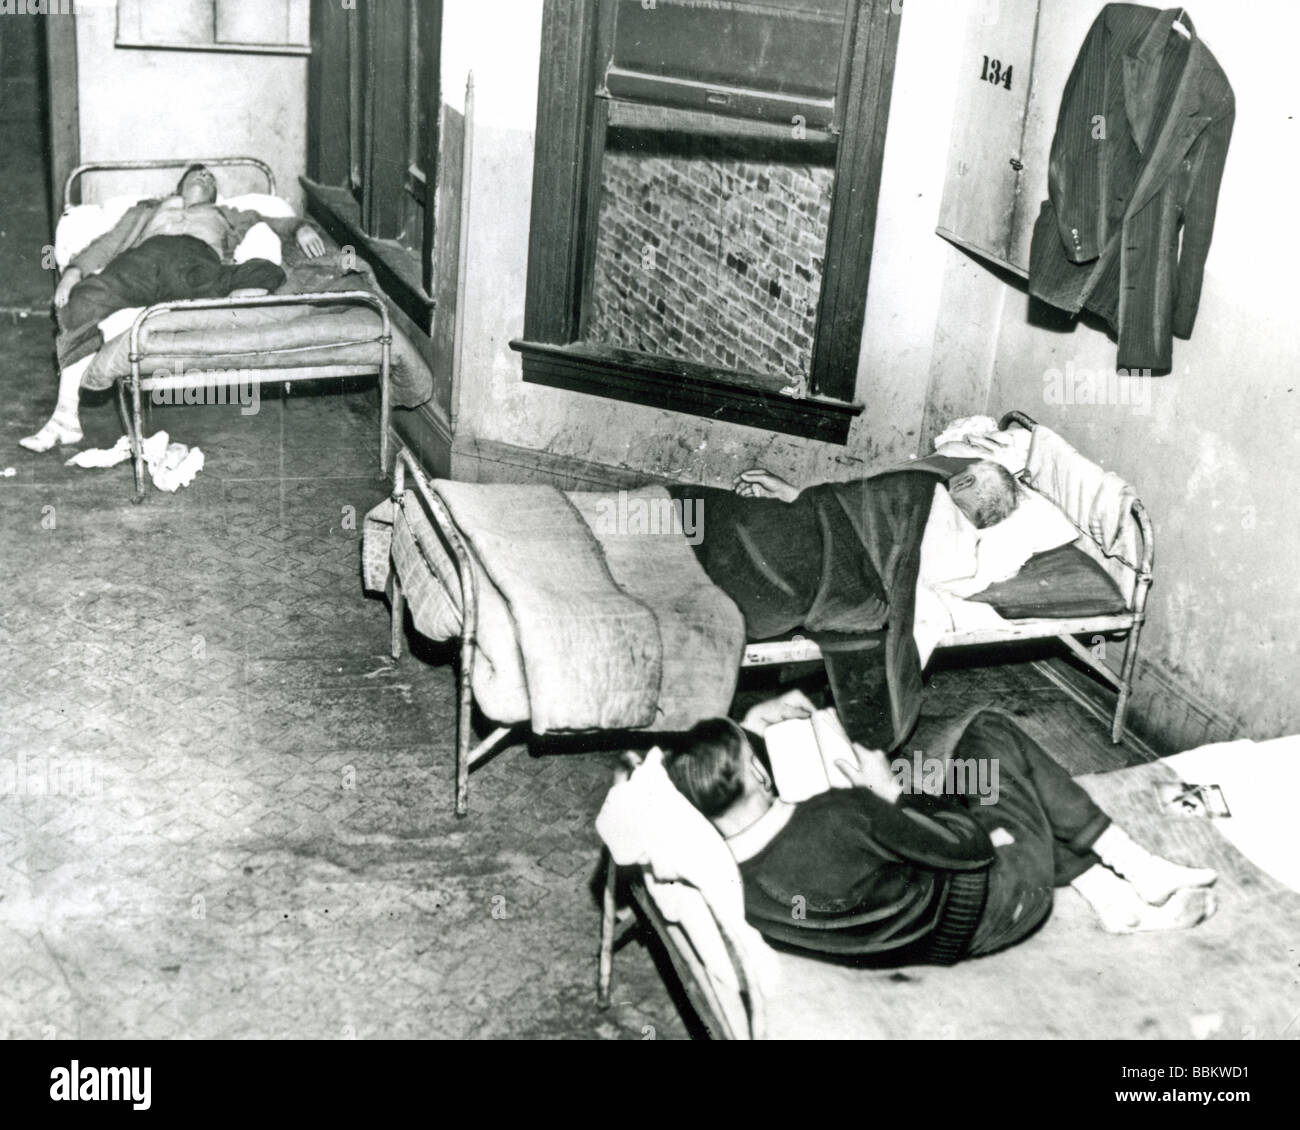 great depression stock photos great depression stock images  poverty a chicago flophouse during the great depression of the 1930s stock image